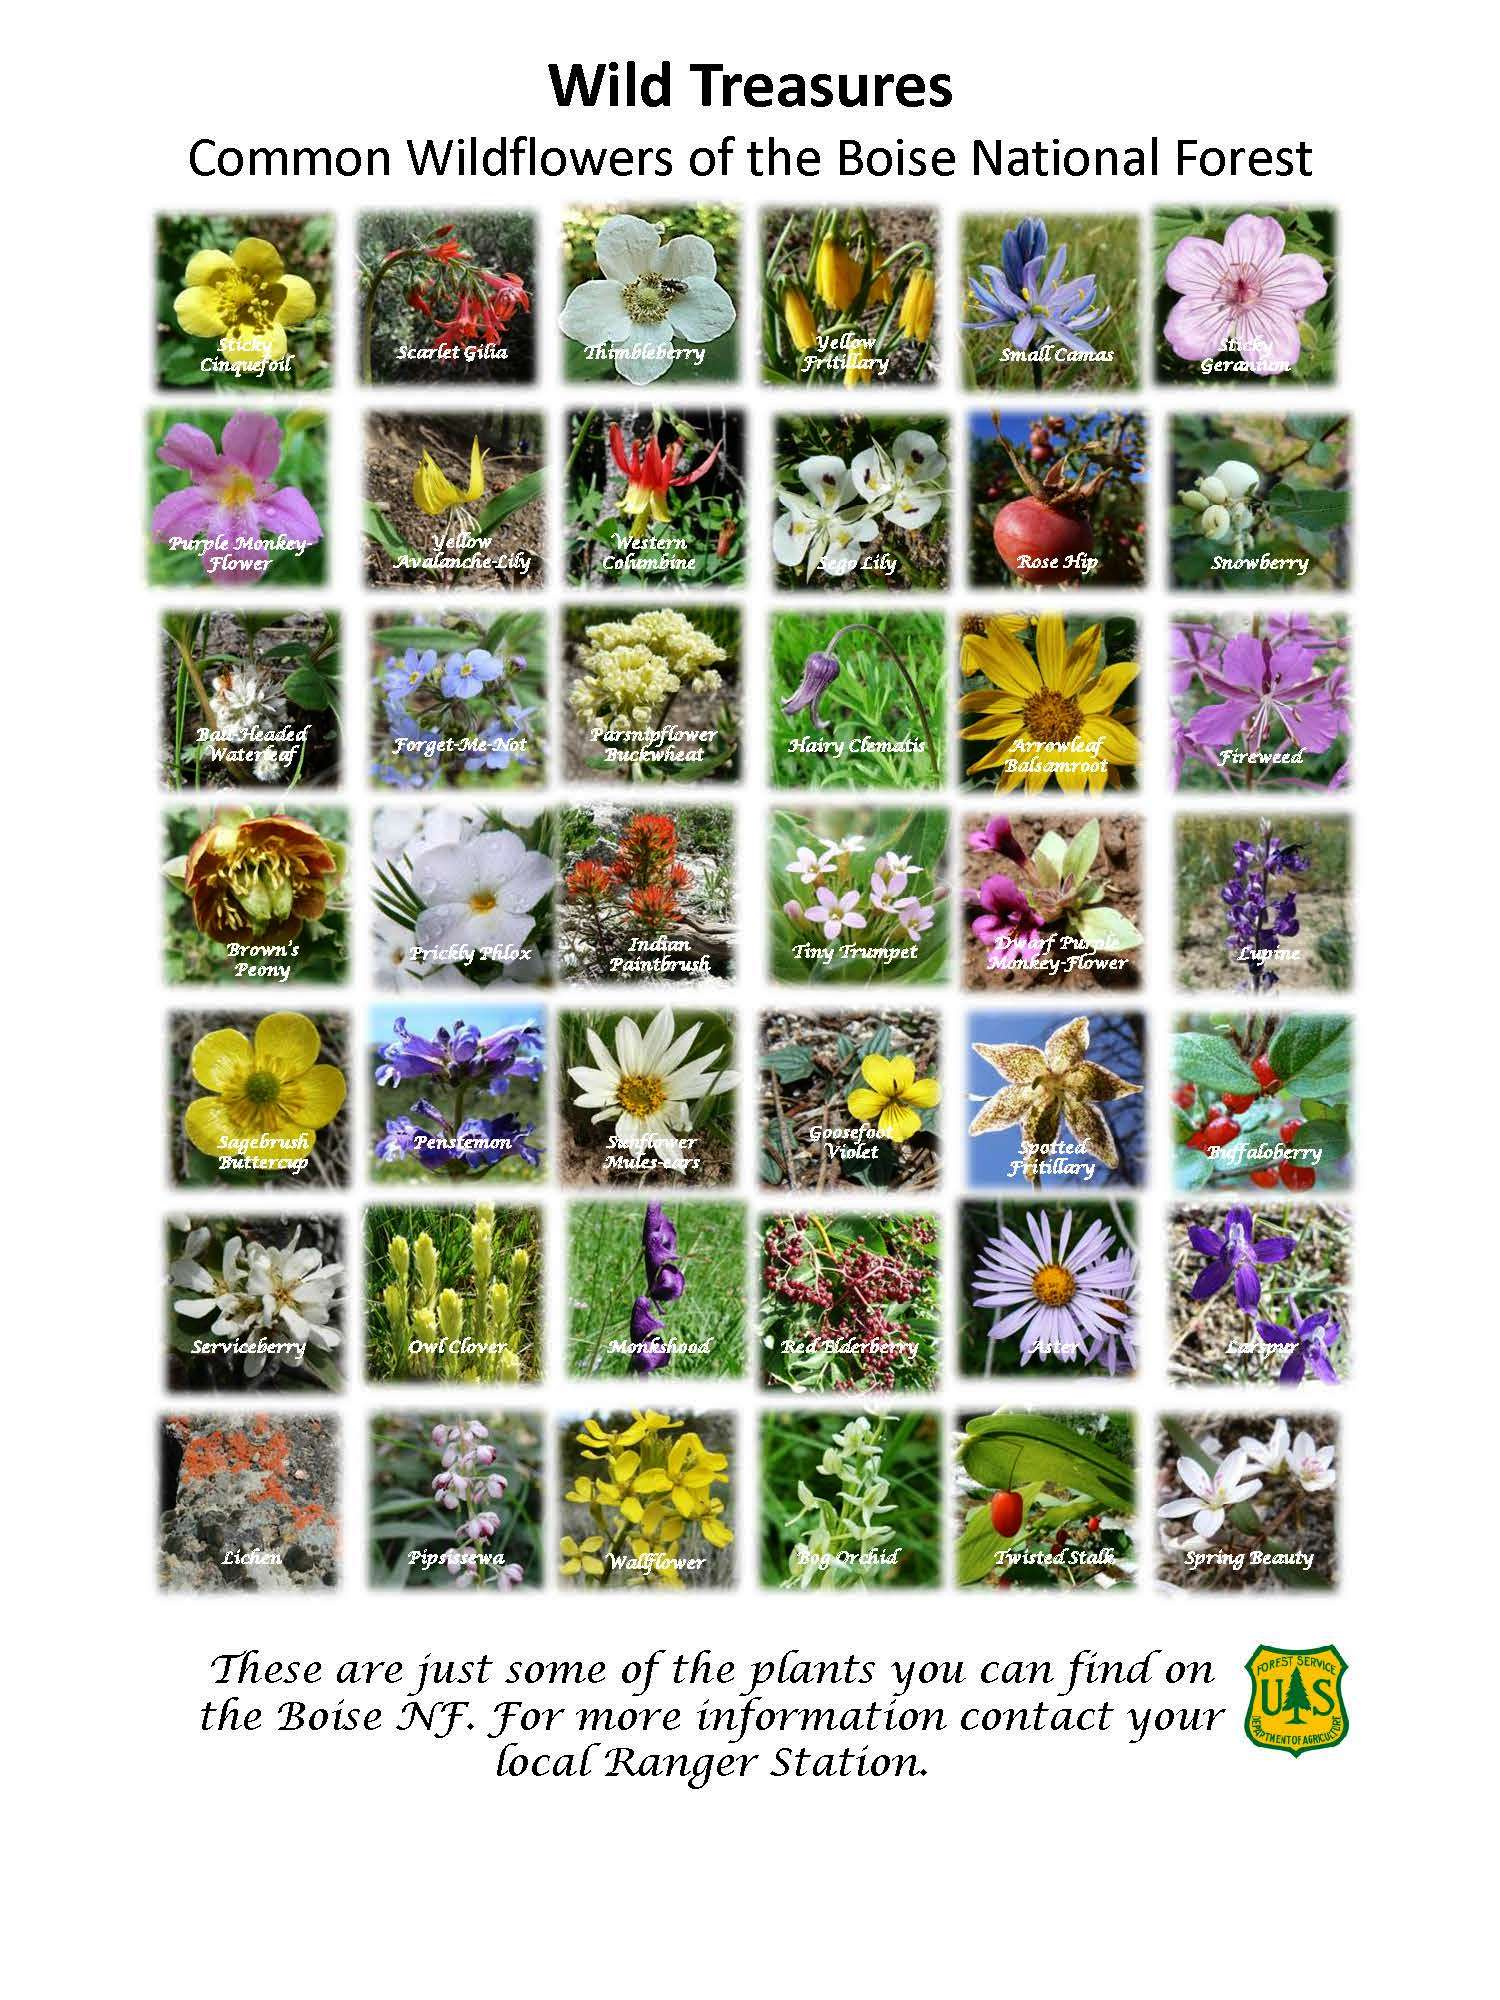 A poster covered in square photos of wildflowers with common names